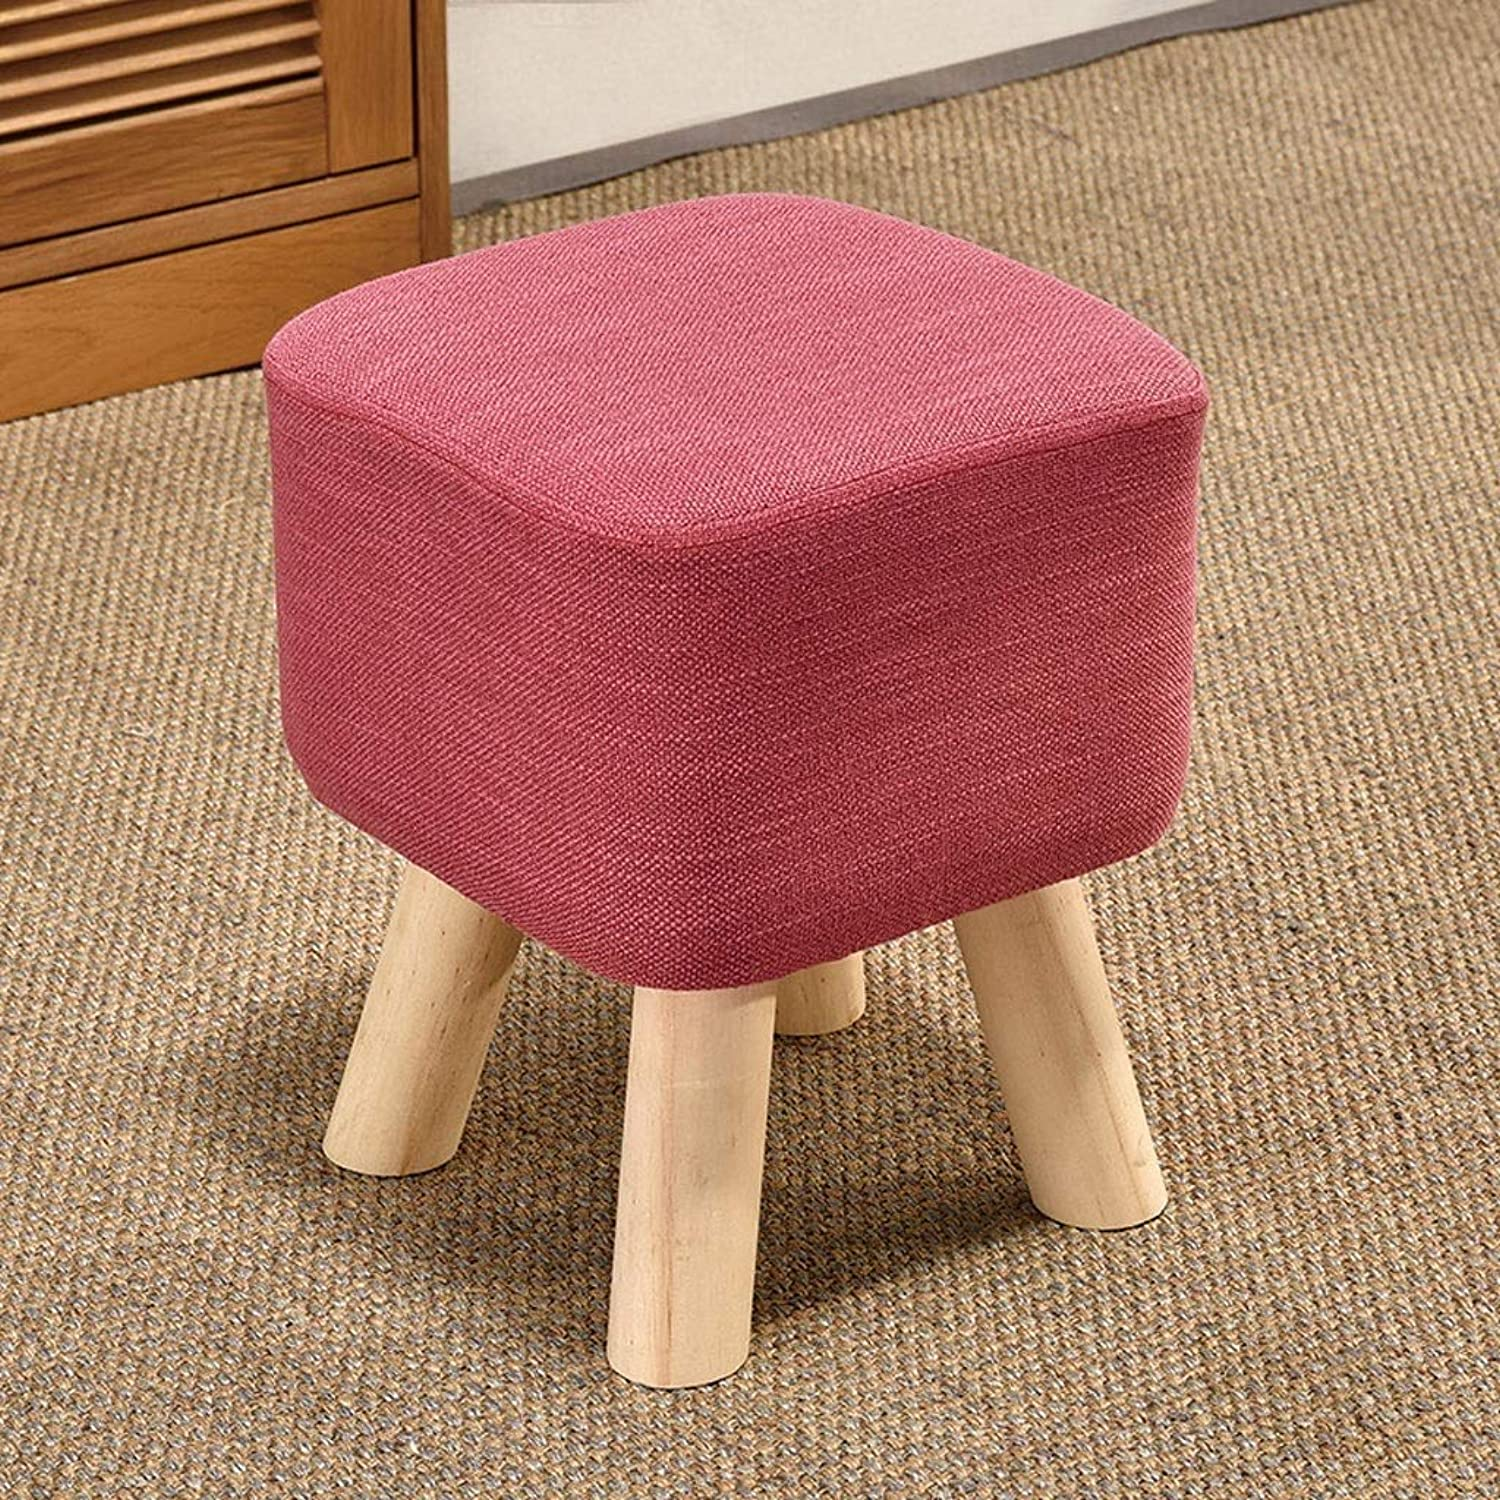 Small Bench Small Stool Change shoes Bench Footstool Low Stool Sofa Stool Cloth Dining Chair Family Haiming (color   Pink)